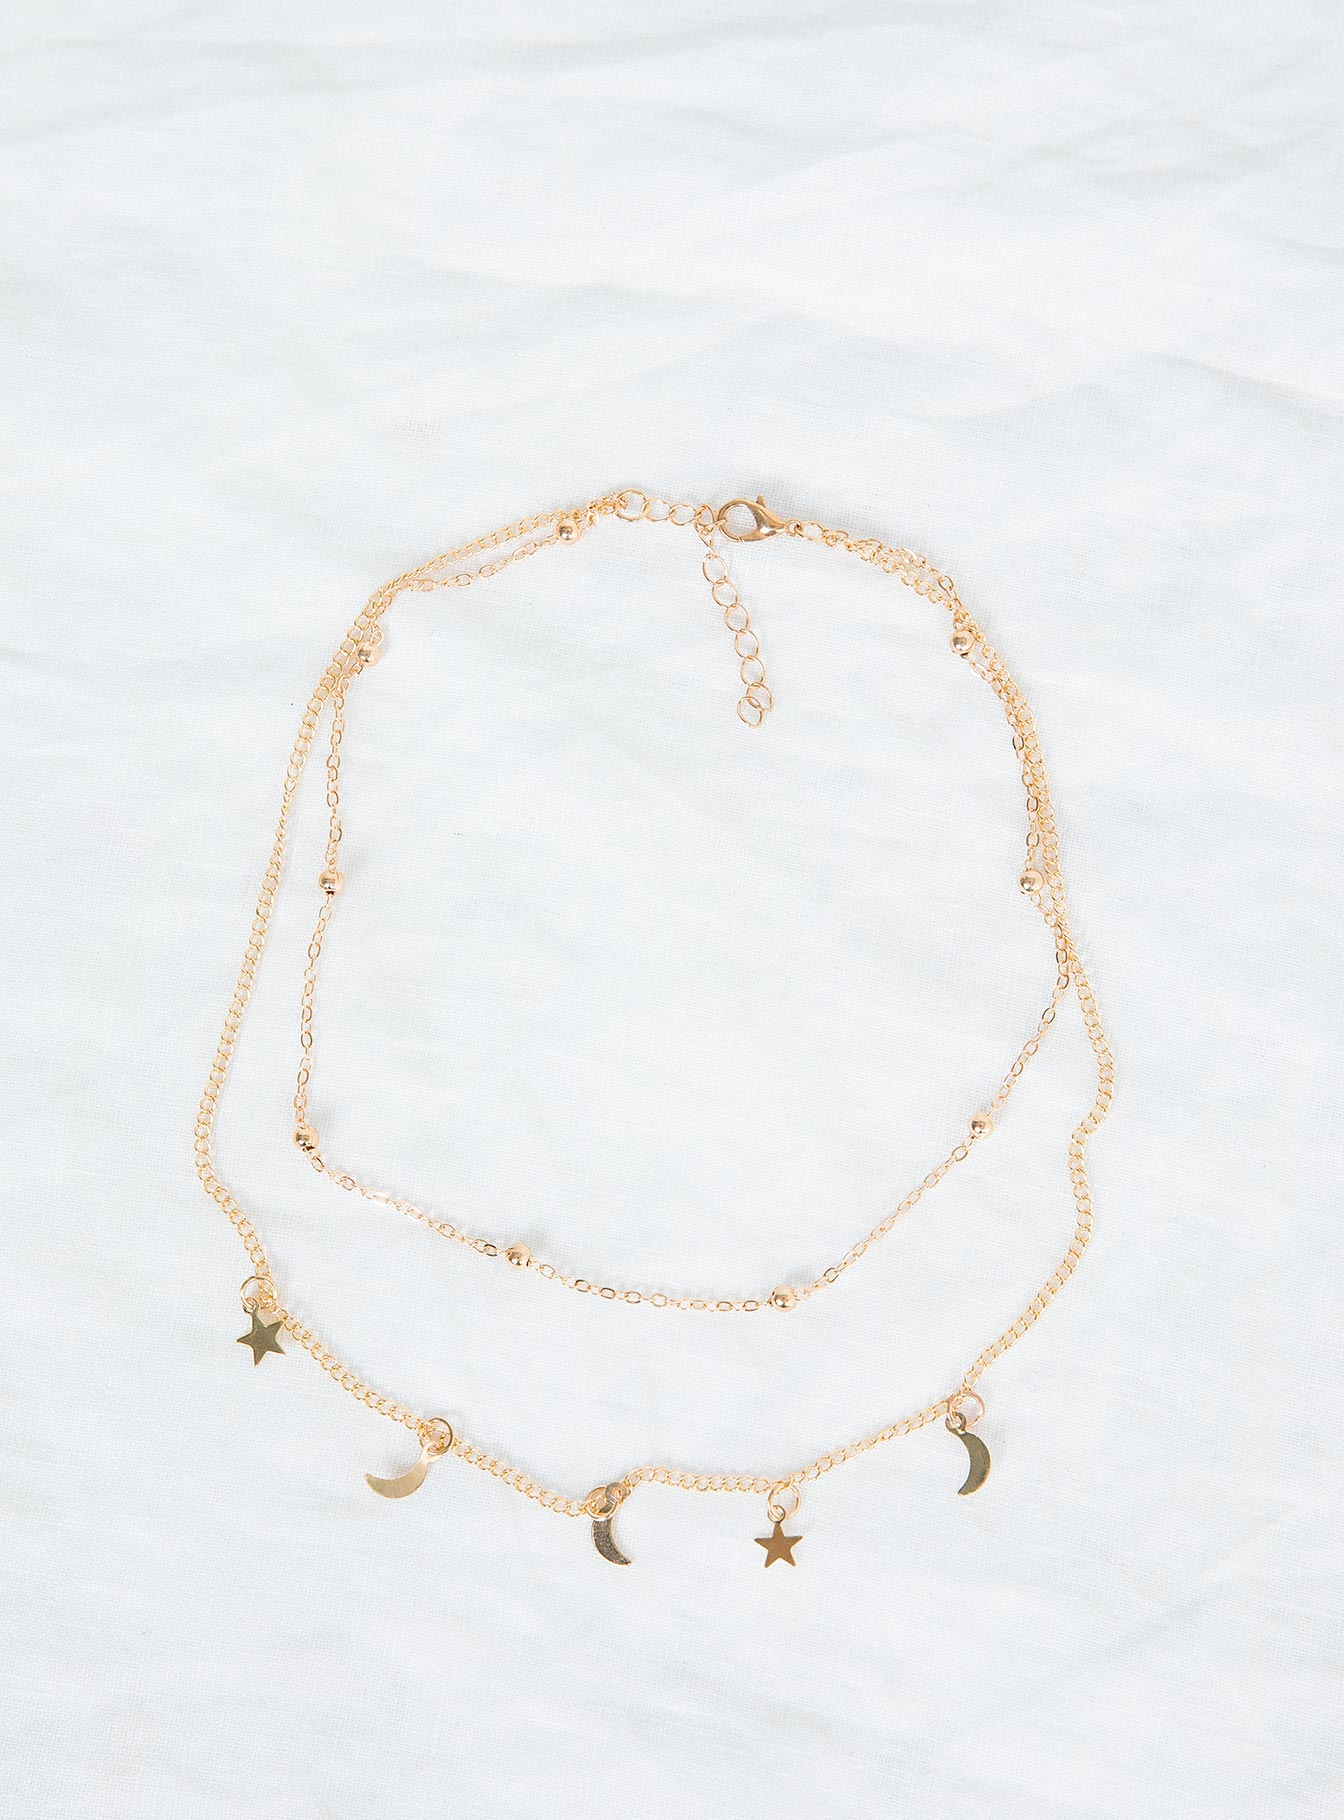 Dainty Double Chain Star Gazer Necklace